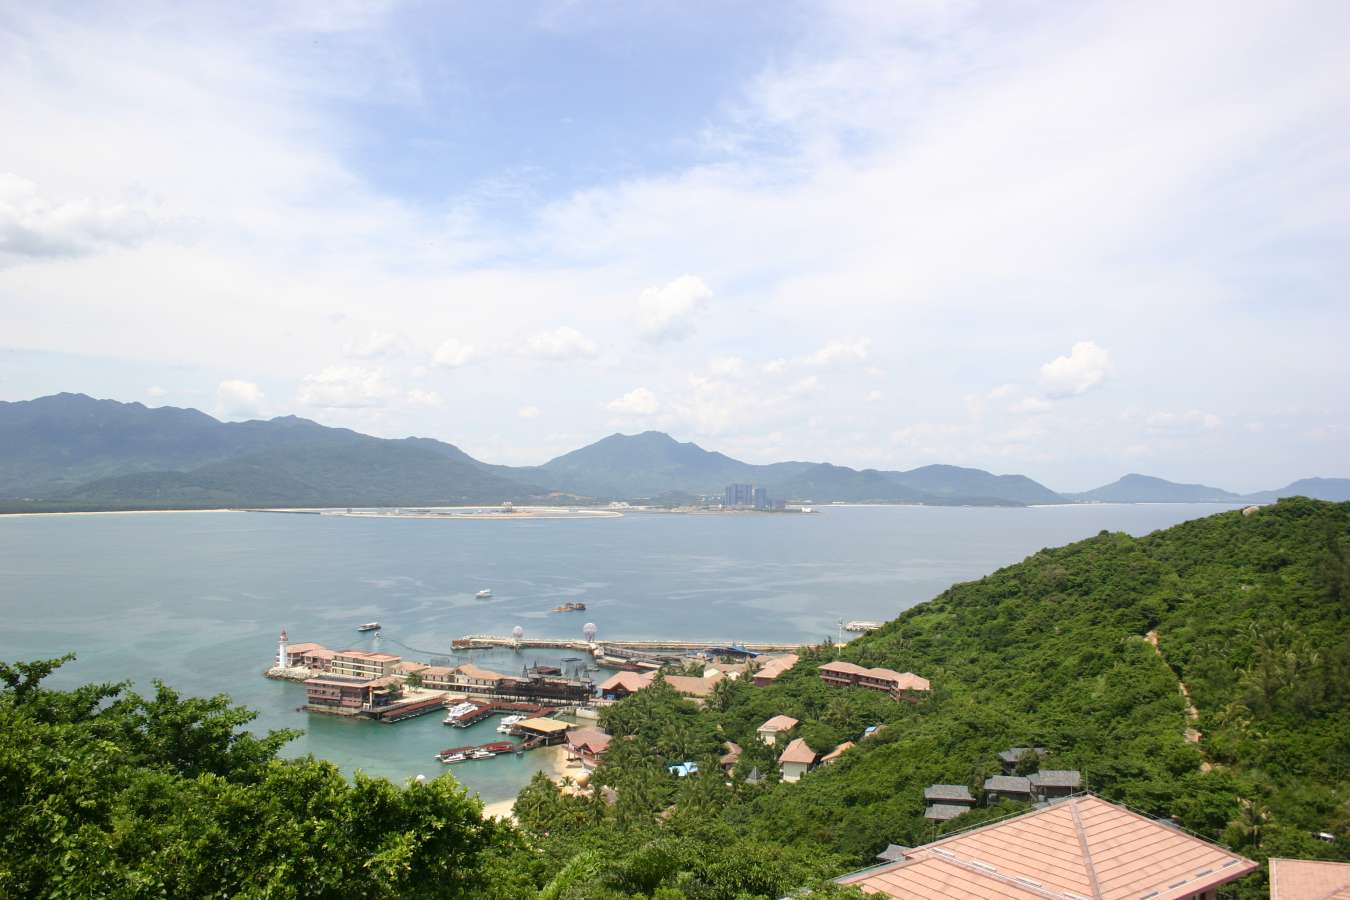 From the highest spot on Boundary Island facing Hainan